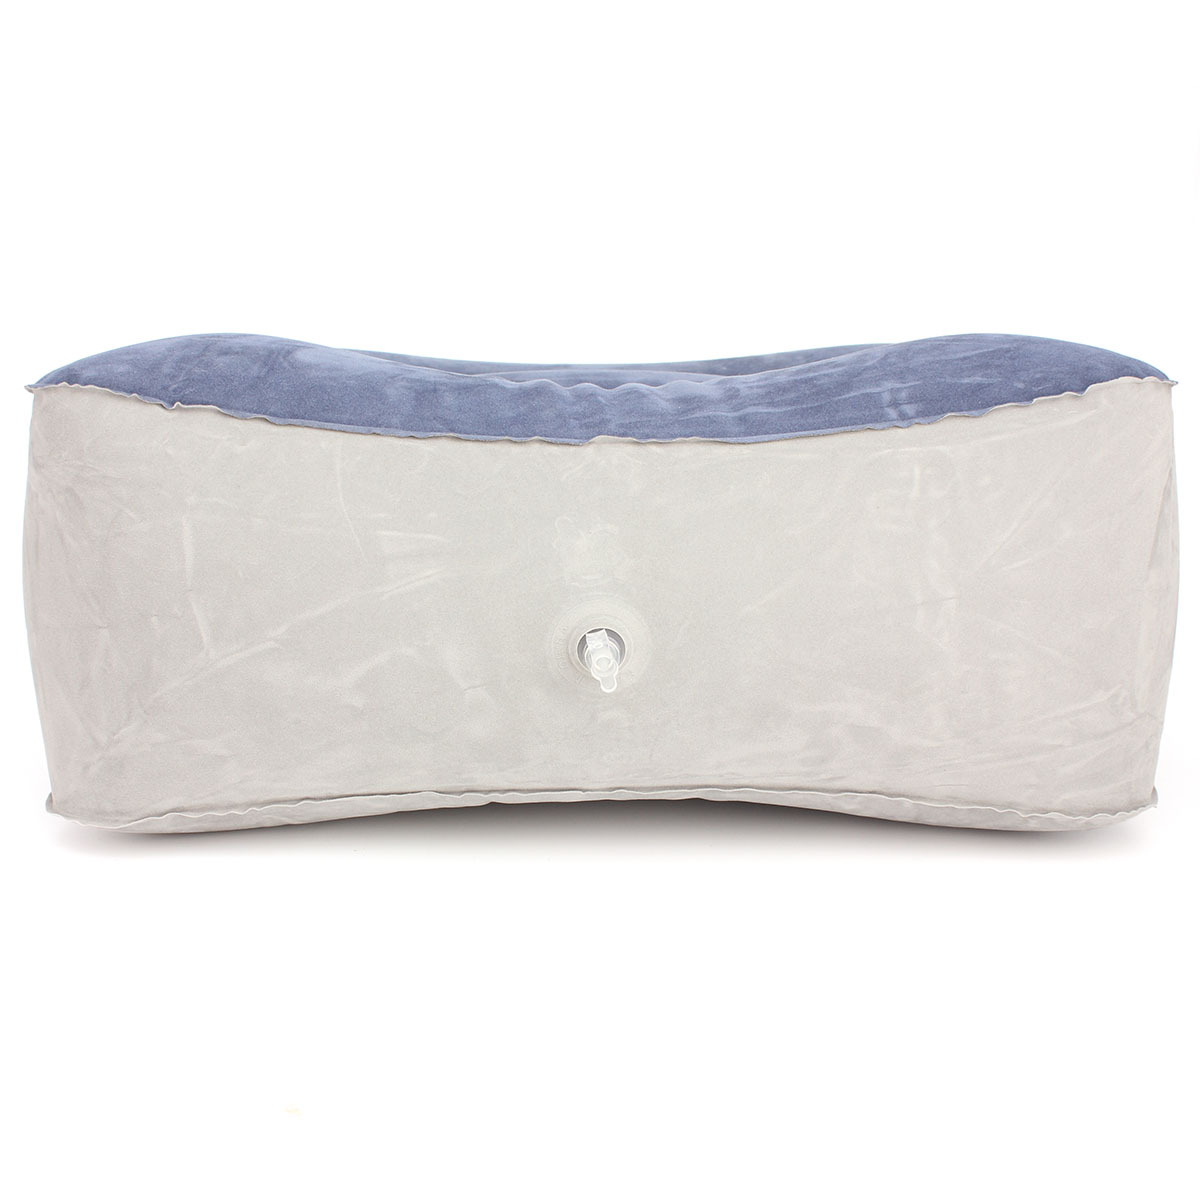 Inflatable Soft Foot Rest Pillow CushionTravel Home Relax ...